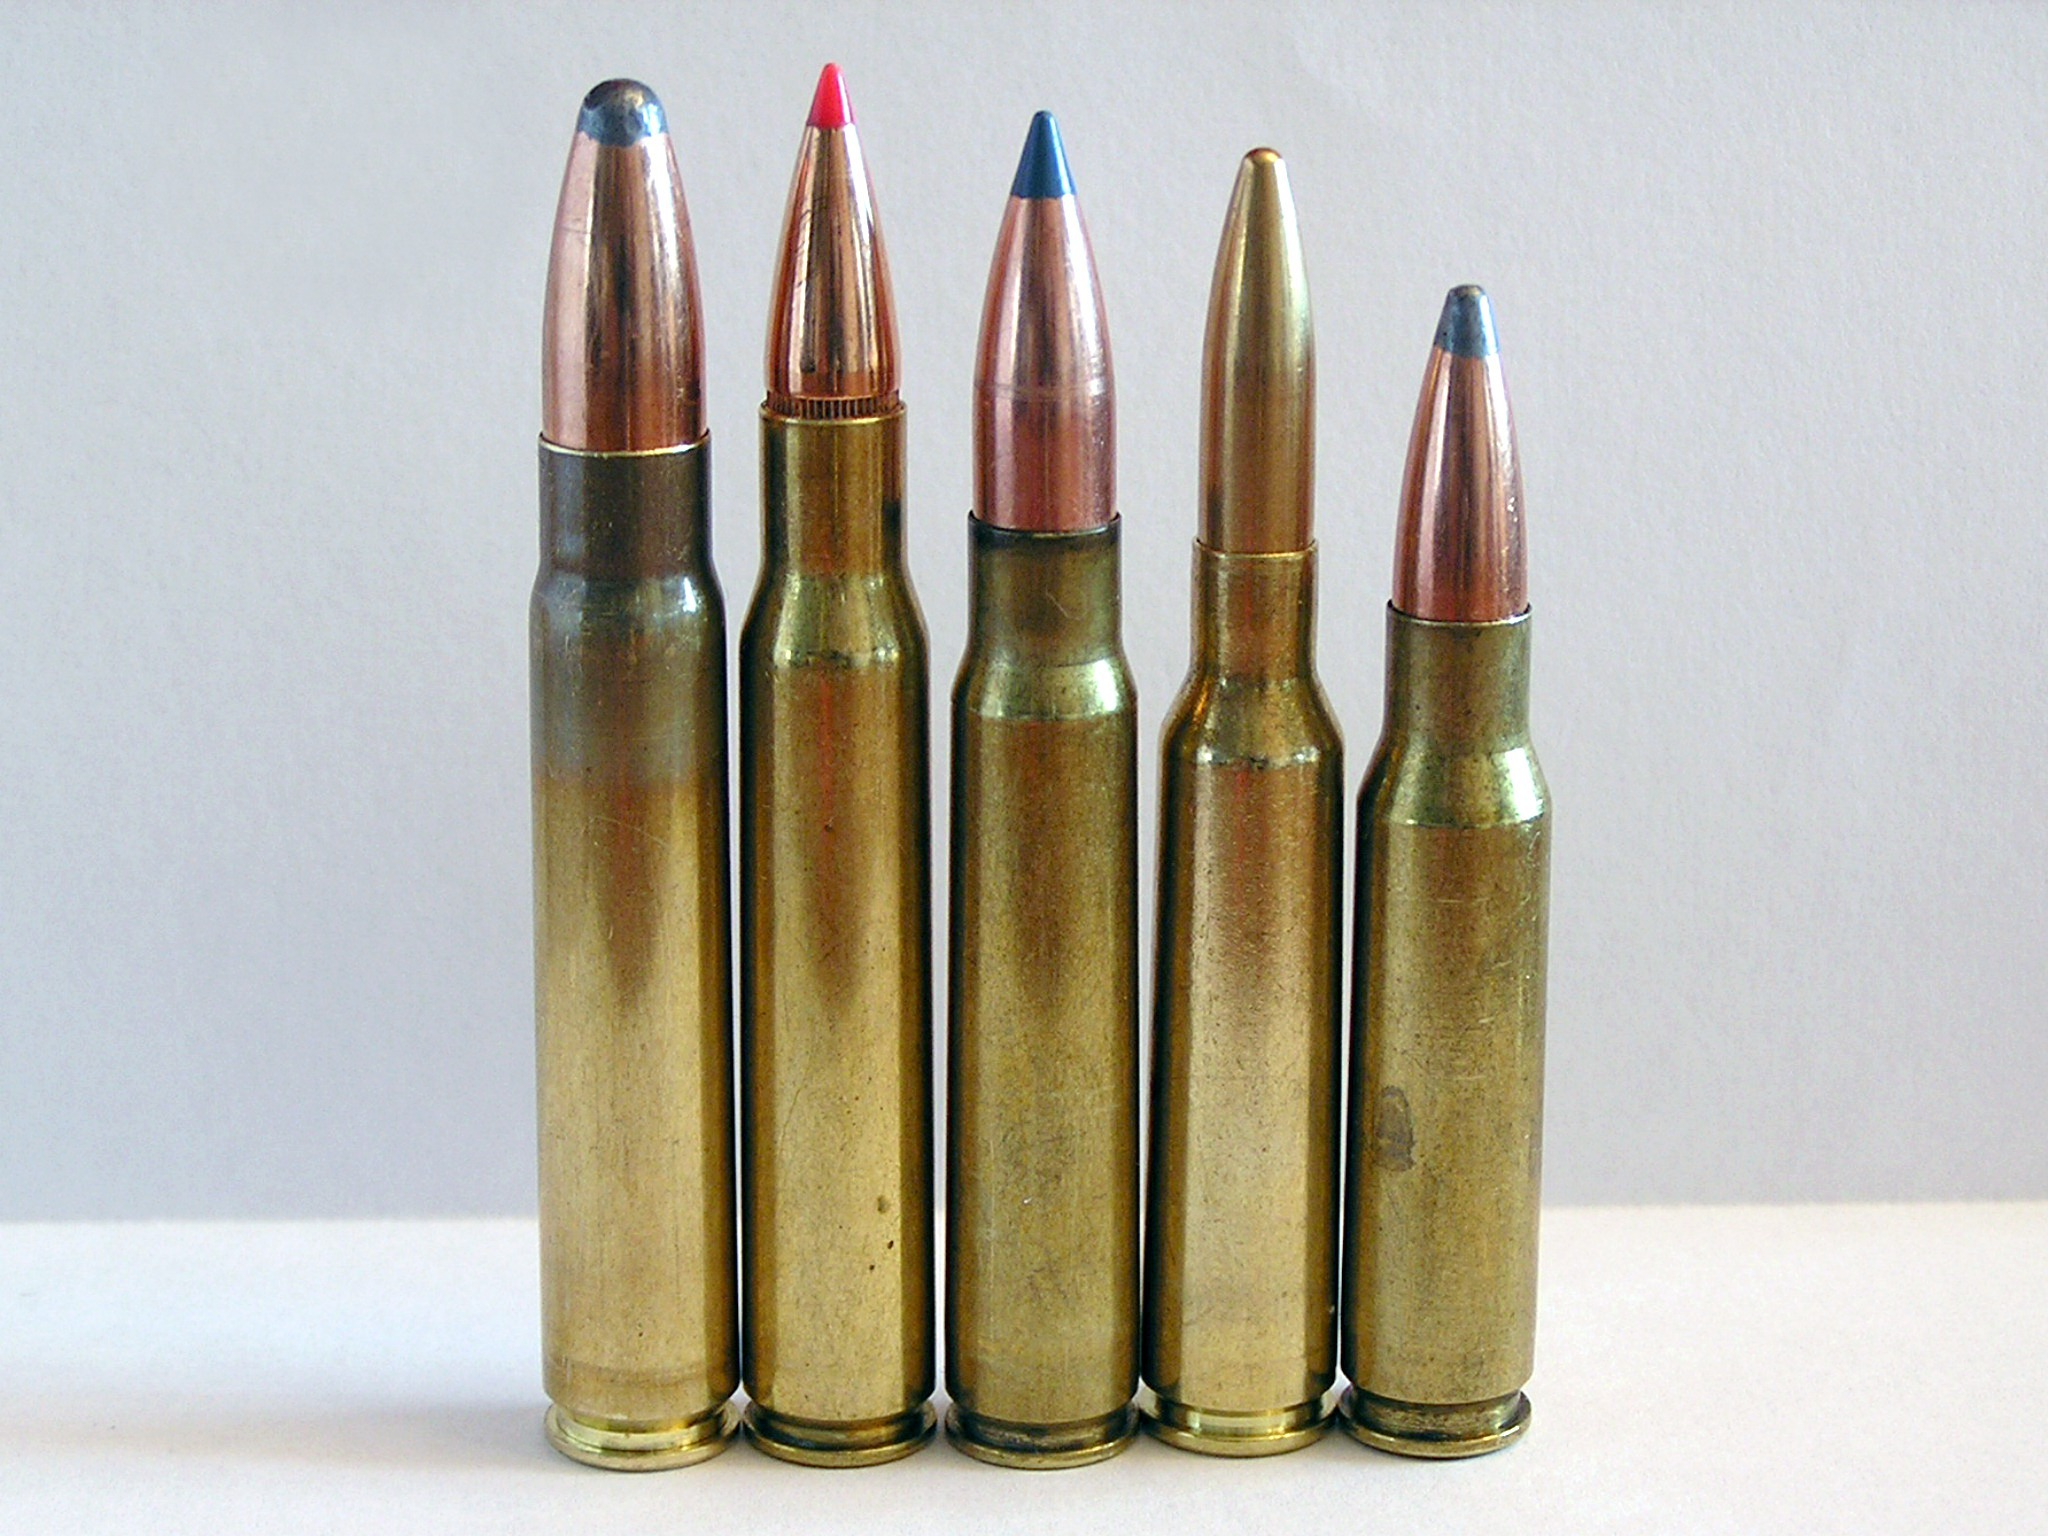 9.3x62, .30-06 Springfield, 8x57 IS, 6.5x55, .308 Winchester.